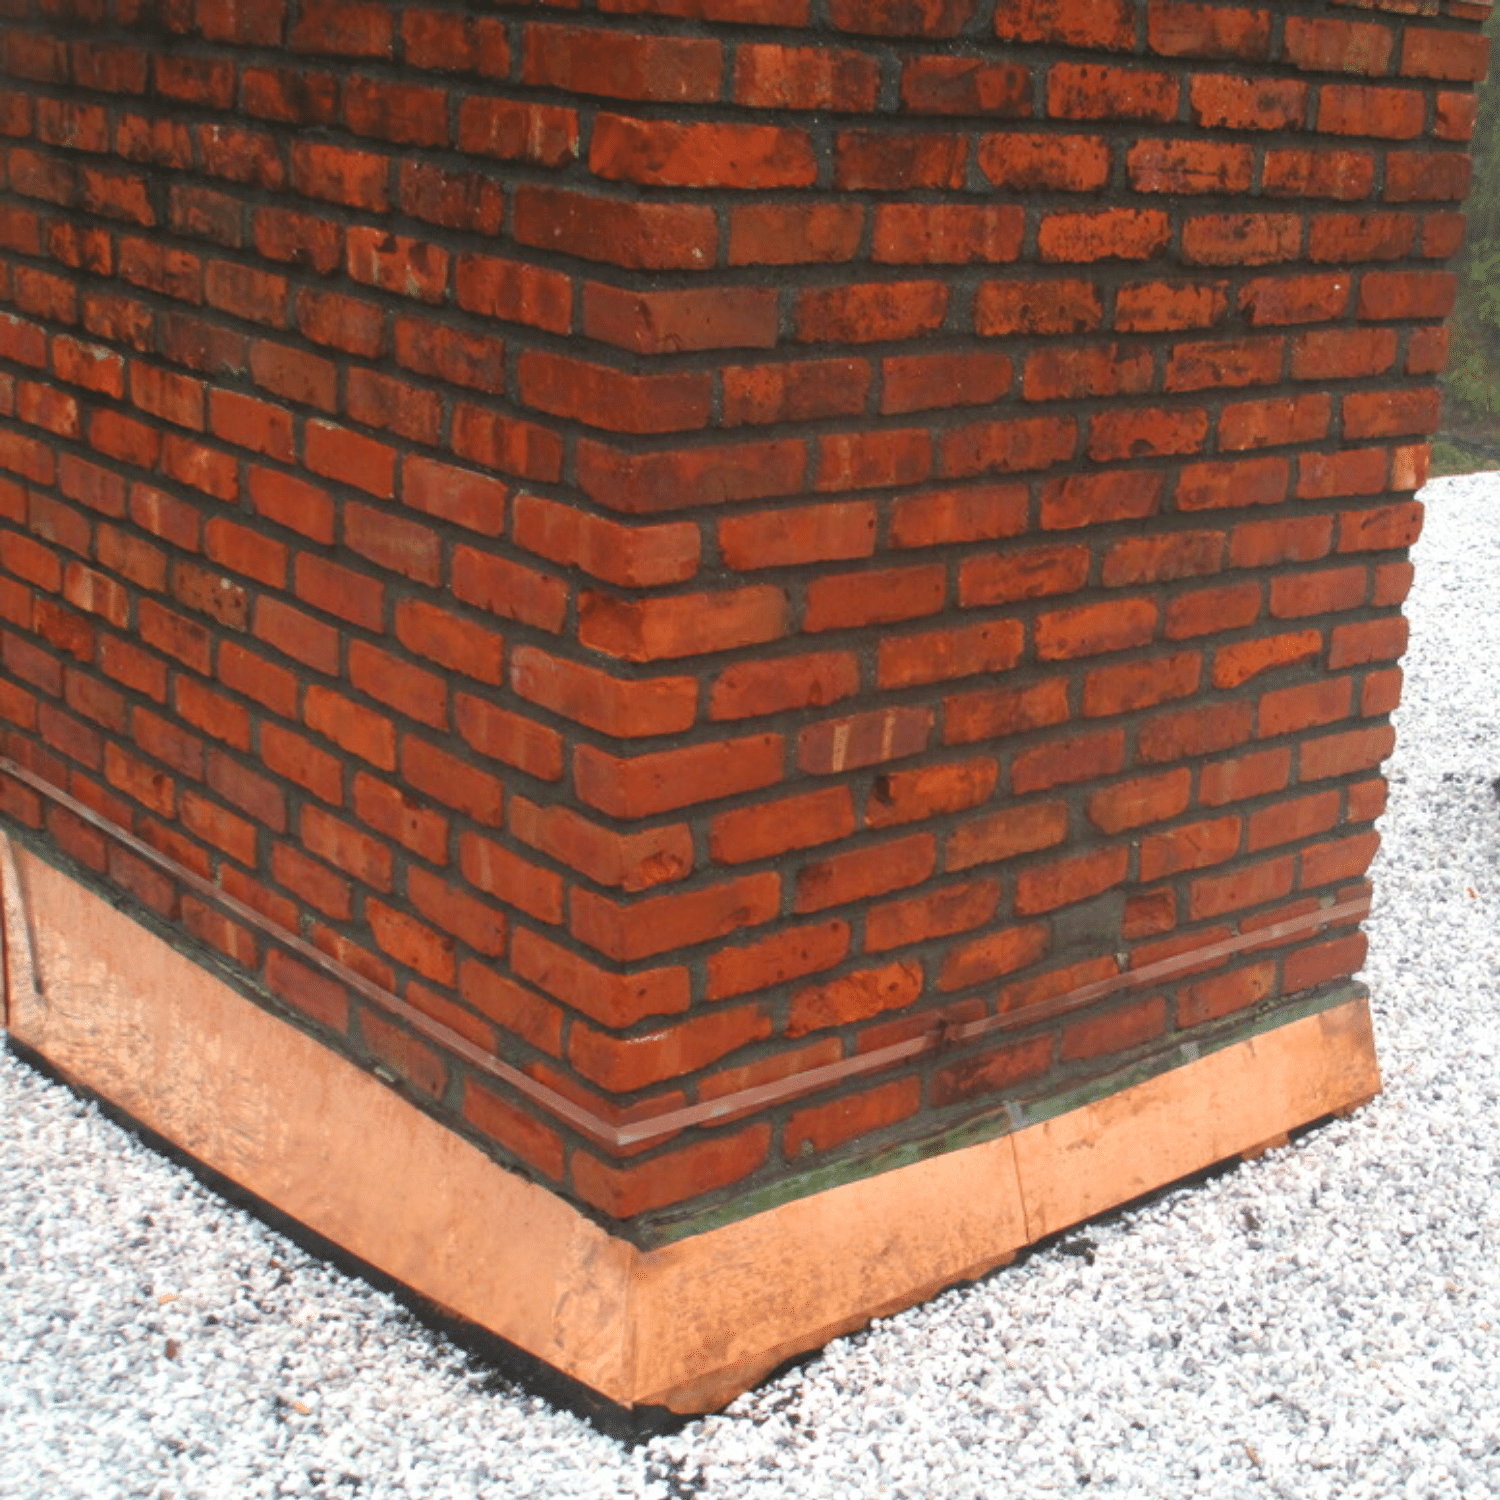 Brick chimney with copper flashing on residential asphalt roof in Hudson Valley